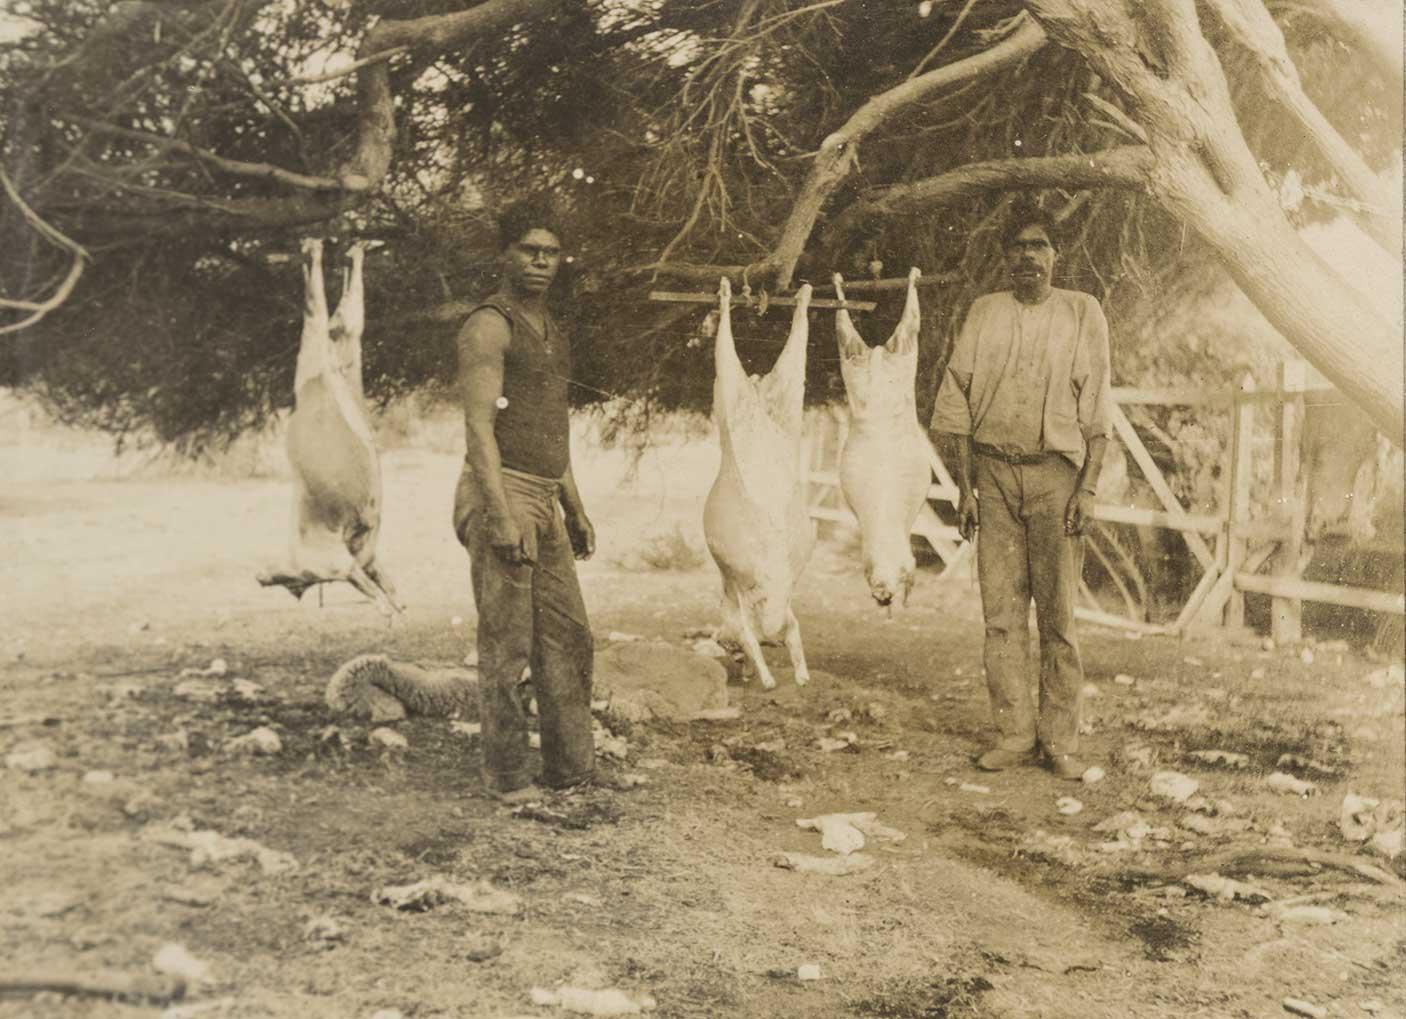 Two Aboriginal men preparing sheep on Wadjemup, c. 1915